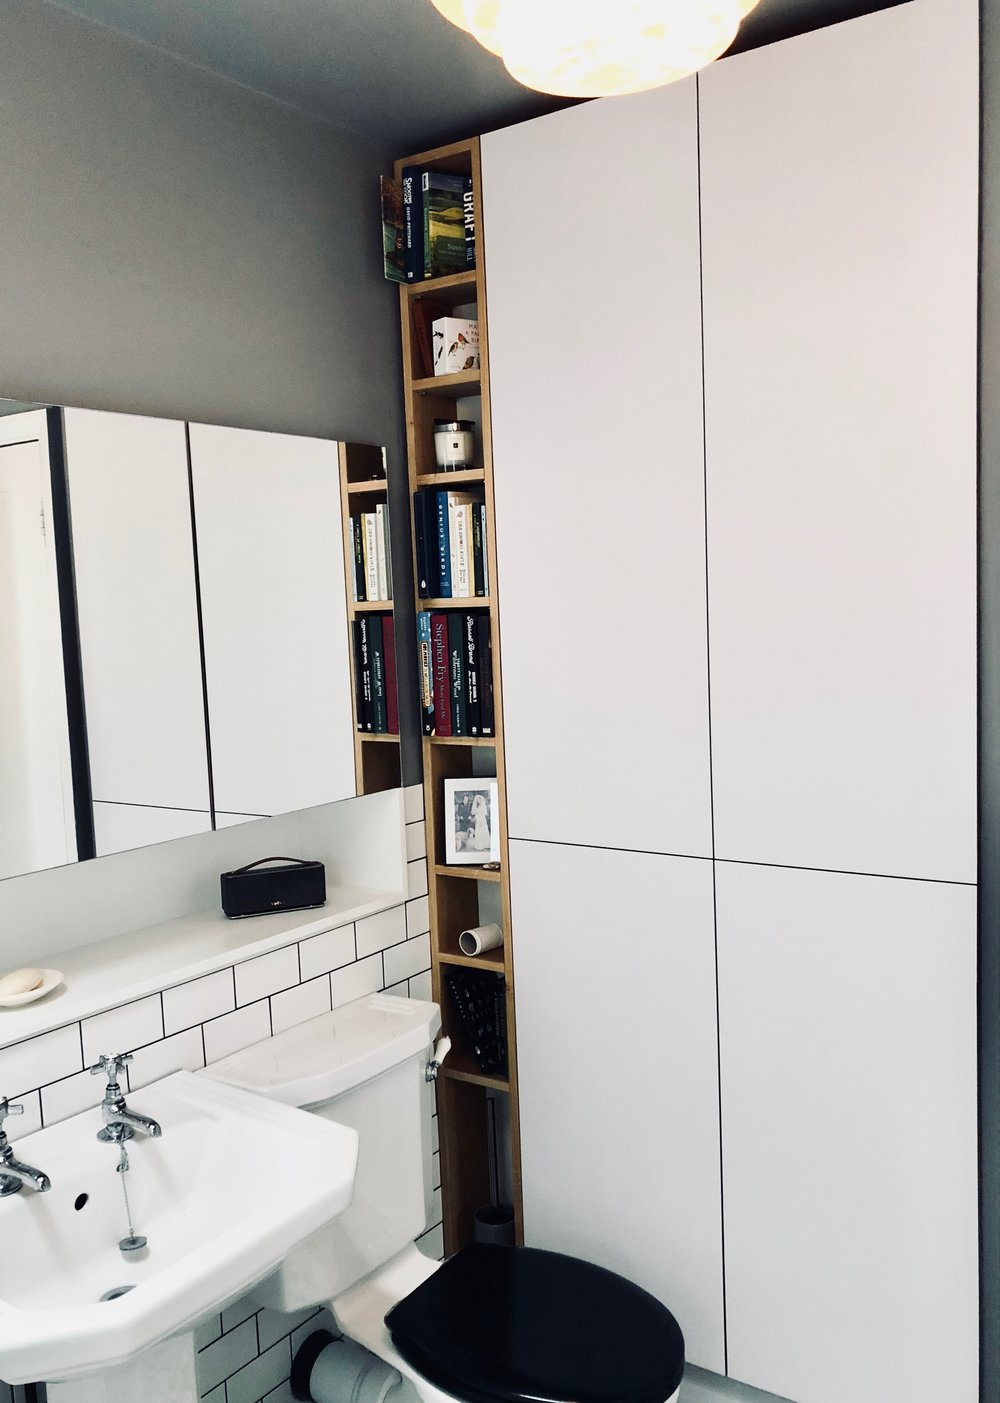 SQ1-bathroom-storage-cabinet-laminate-oak-mirror-corian-1.jpg